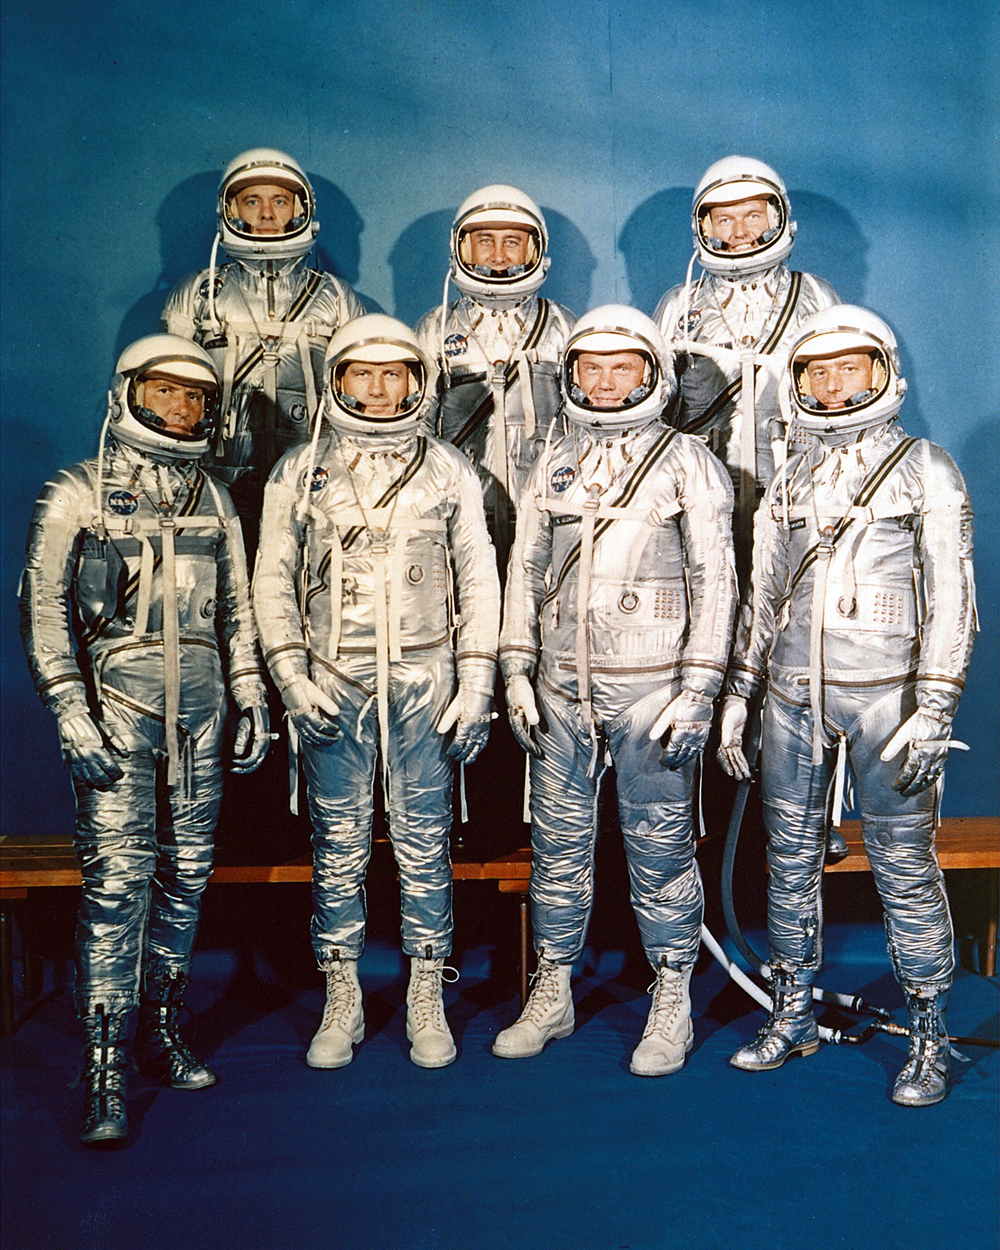 Project Mercury: America's 1st Manned Space Program